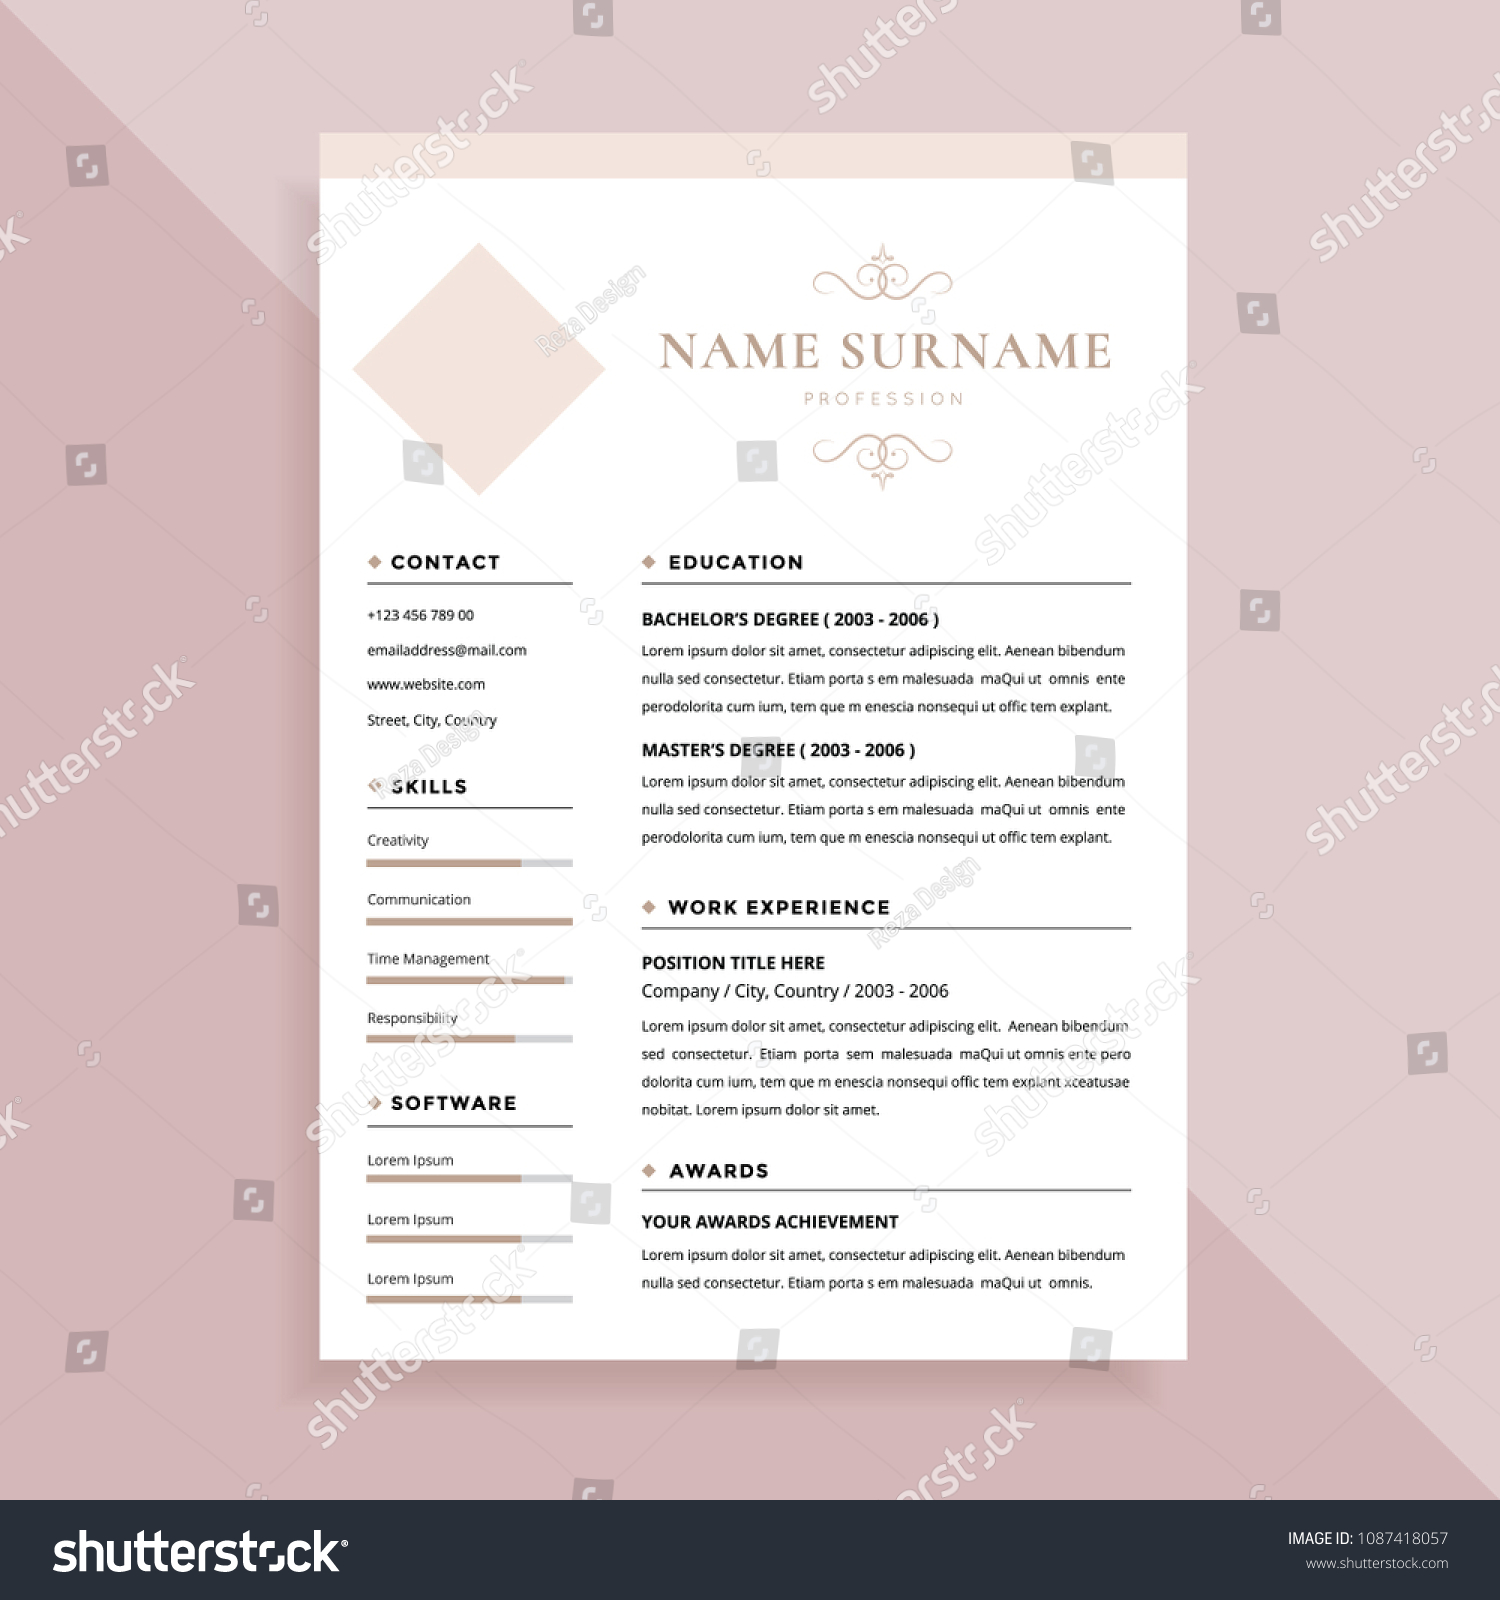 Elegant Simple Resume Template Design Stock Vector (Royalty Free